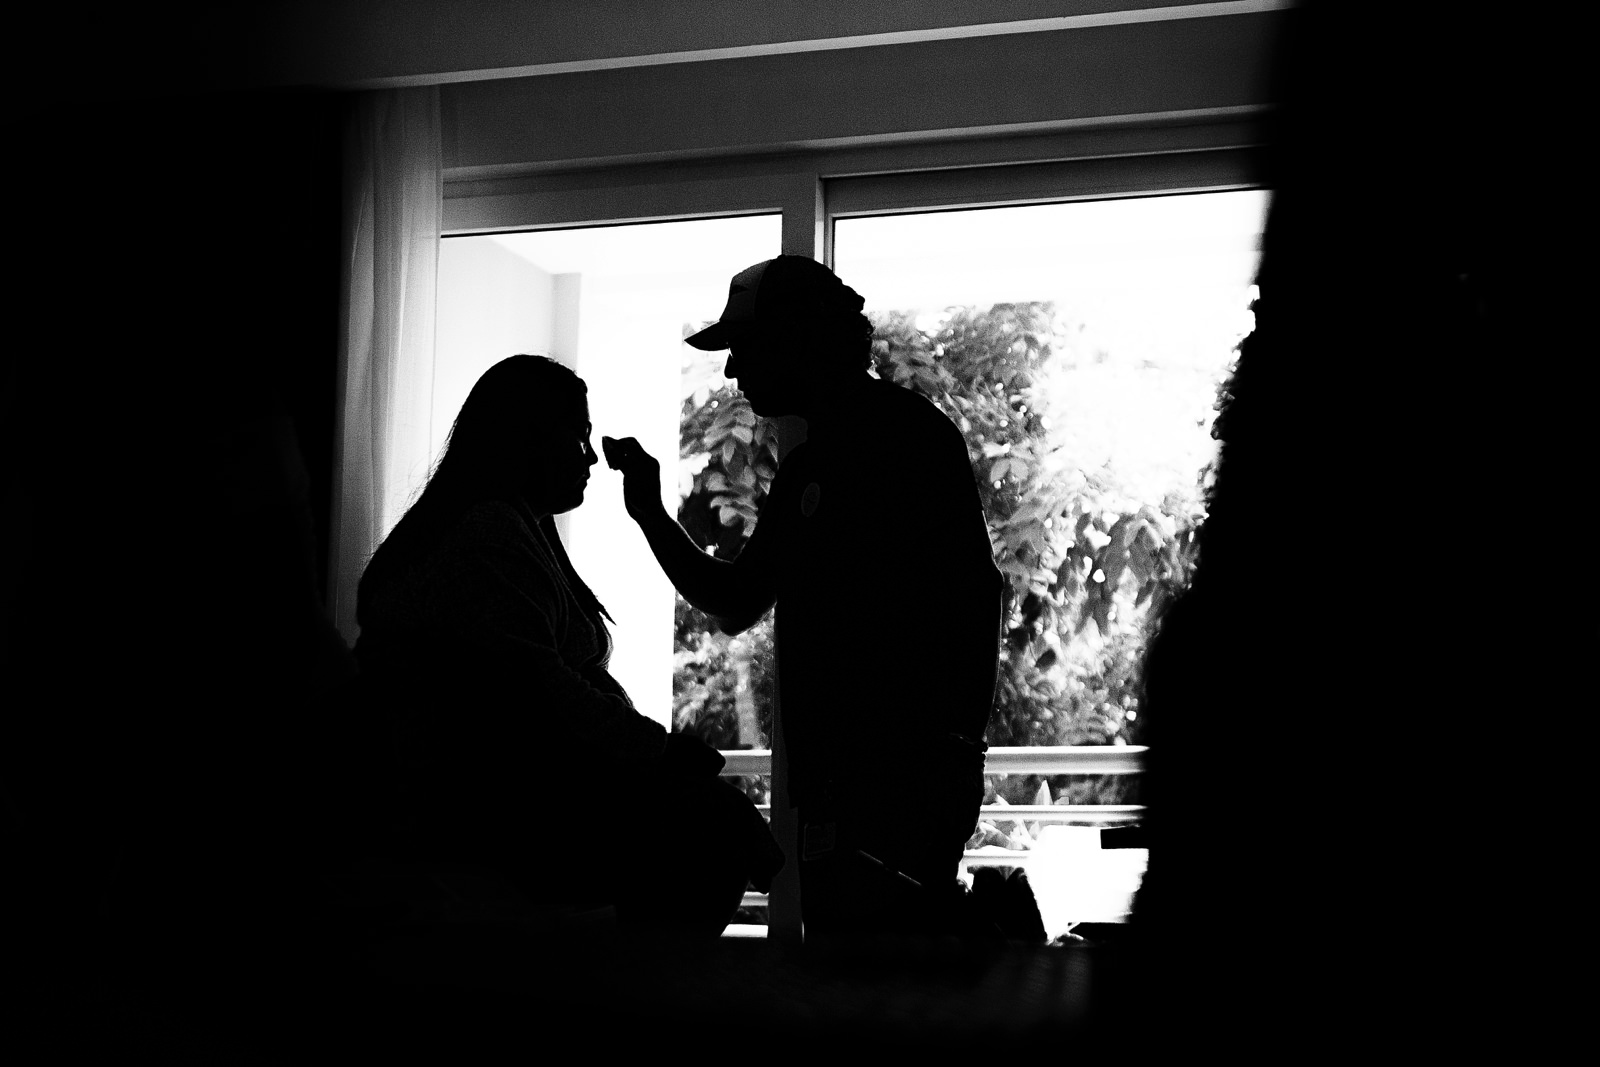 Silhouette of the bride getting her make up before the ceremony